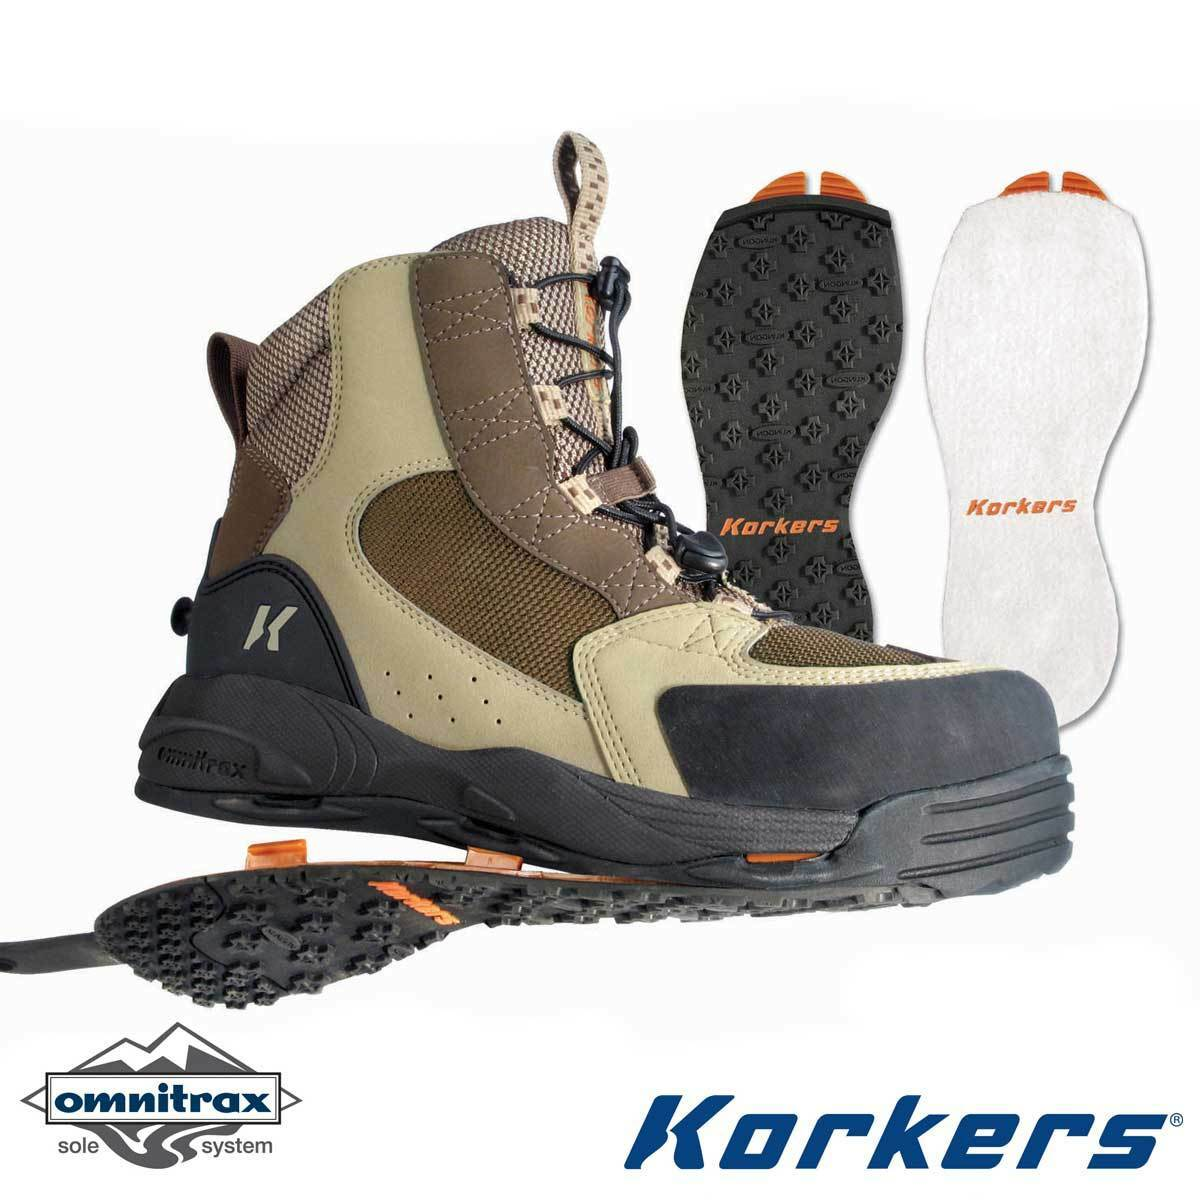 NEW -  Korkers Redside Wading Boots,  Felt Kling-On Sole-11 - FREE SHIPPING   clearance